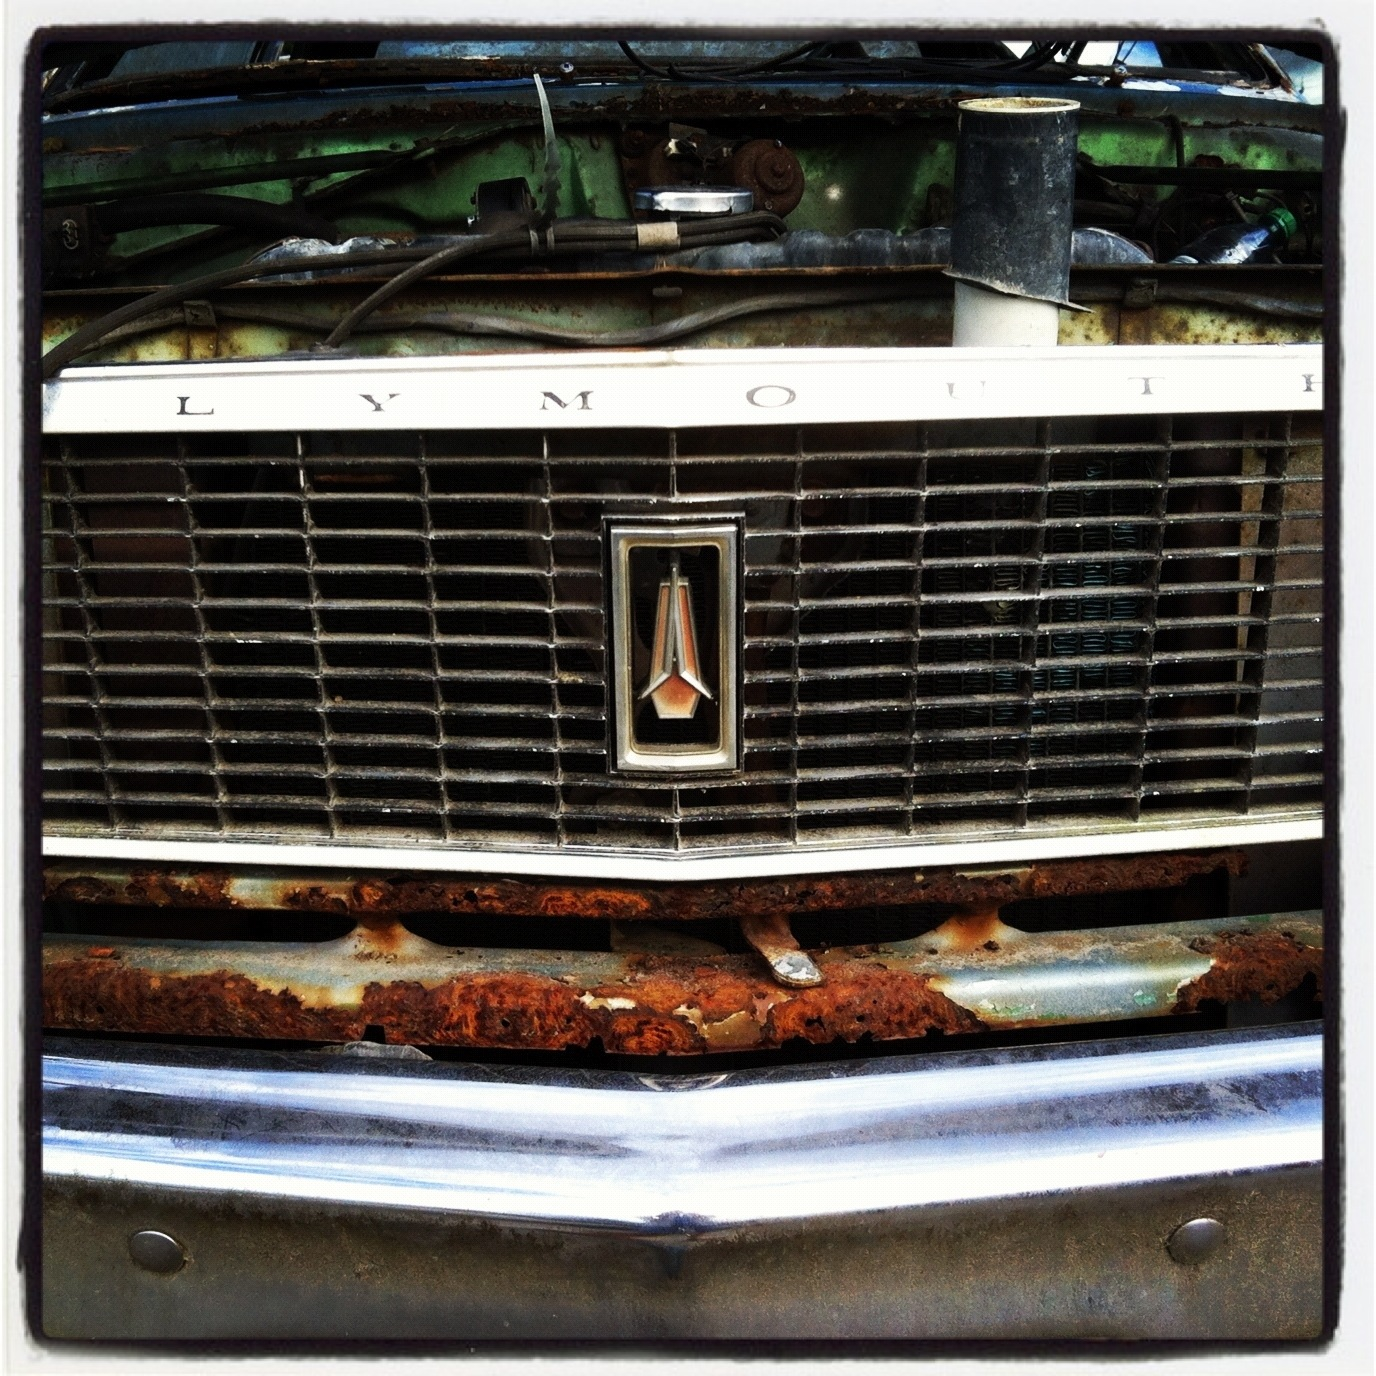 20120601 121038 I Heart Instagram & The Junkyard